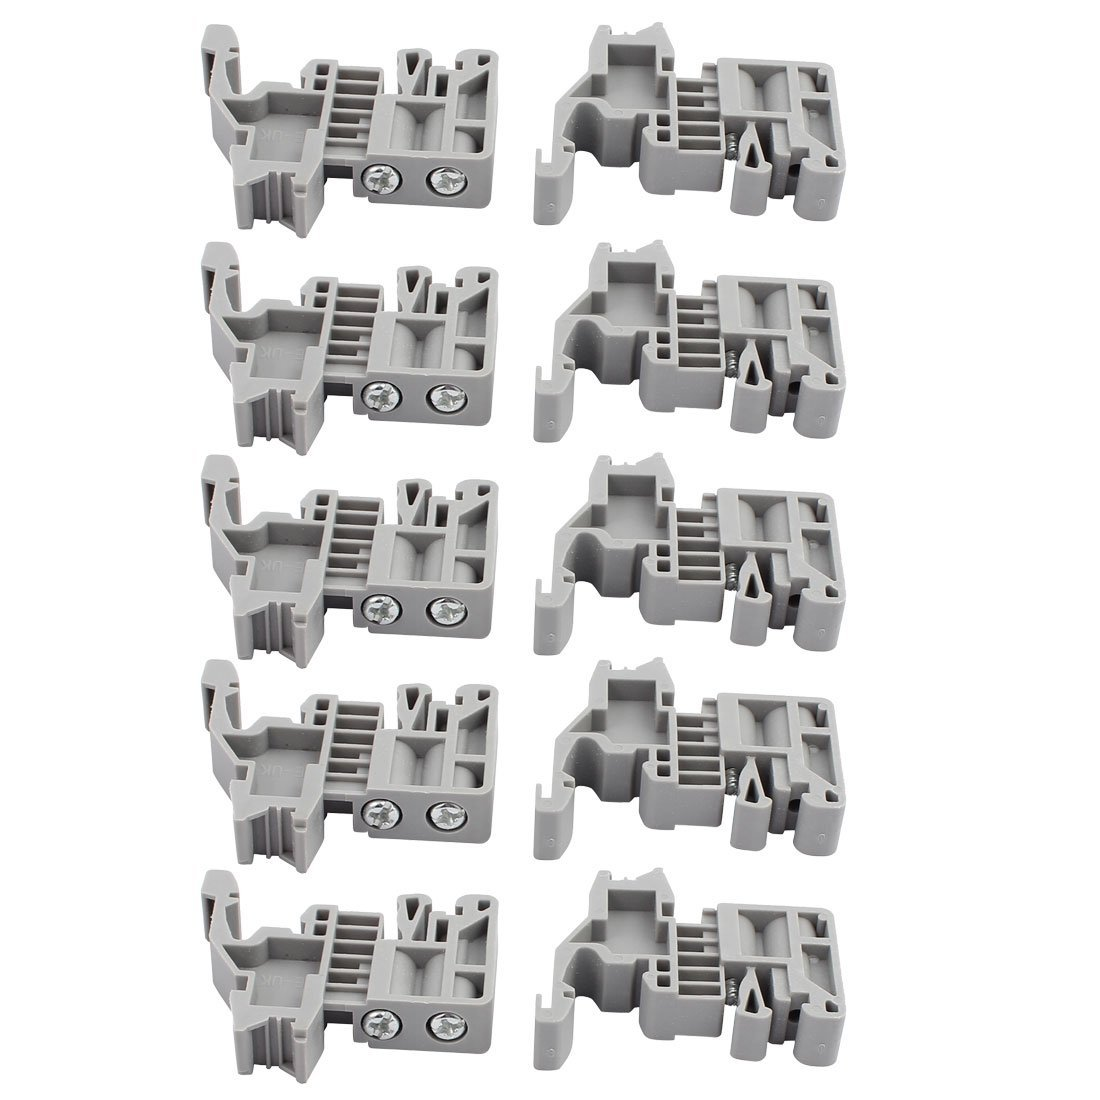 Aexit 10 Pcs E/UK 35mm Din DIN Rail End Screw Clamp Terminal Fixed Block Gray